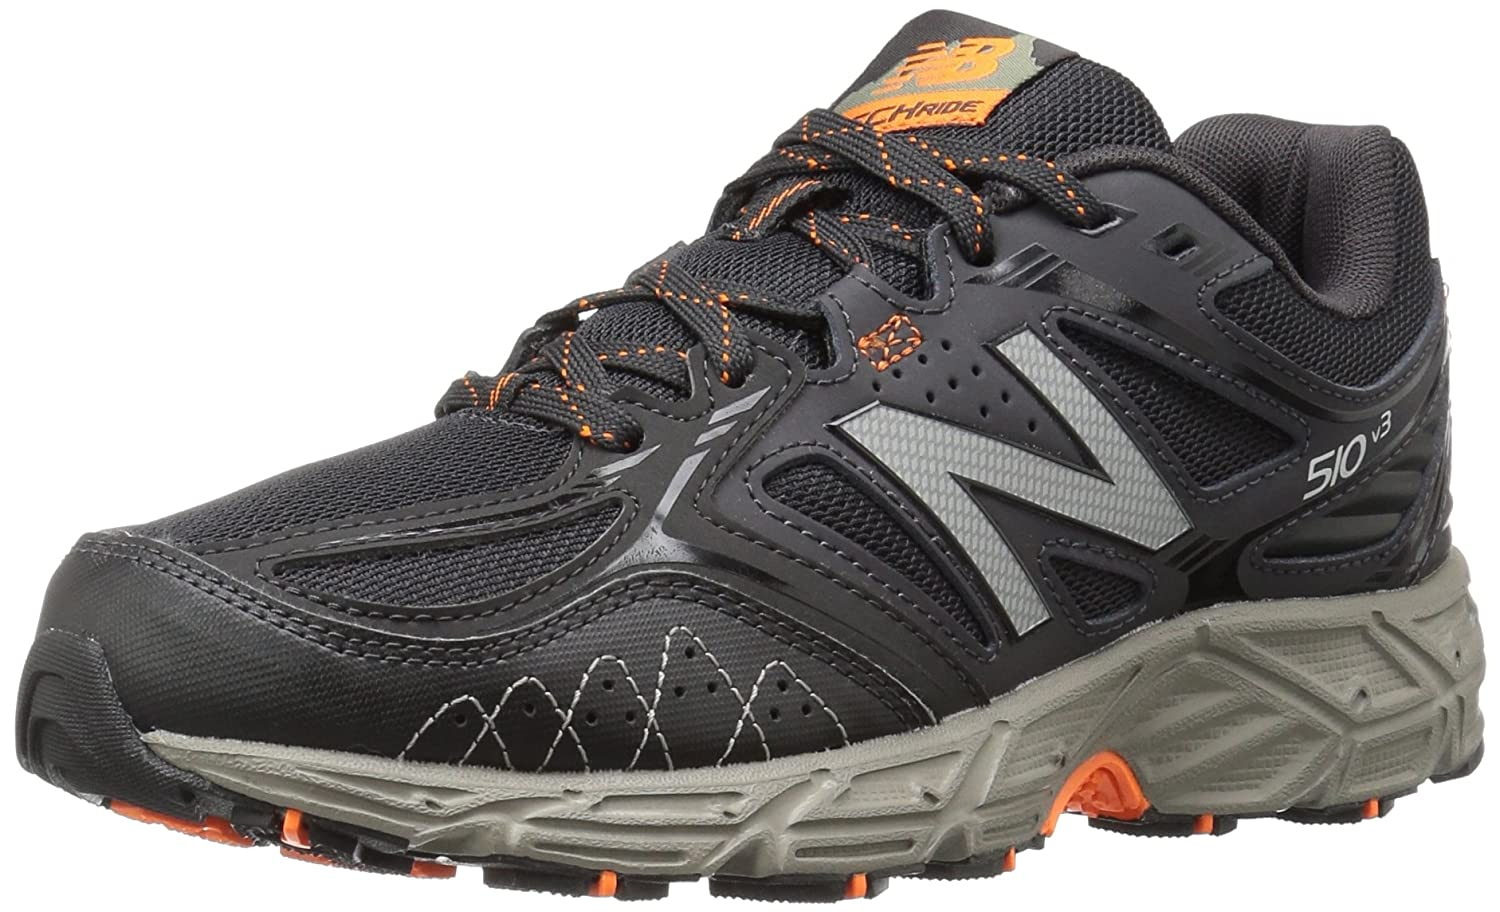 best selection of 2019 official store well known New Balance Mens 510v3 Trail Running Shoe New Balance ...